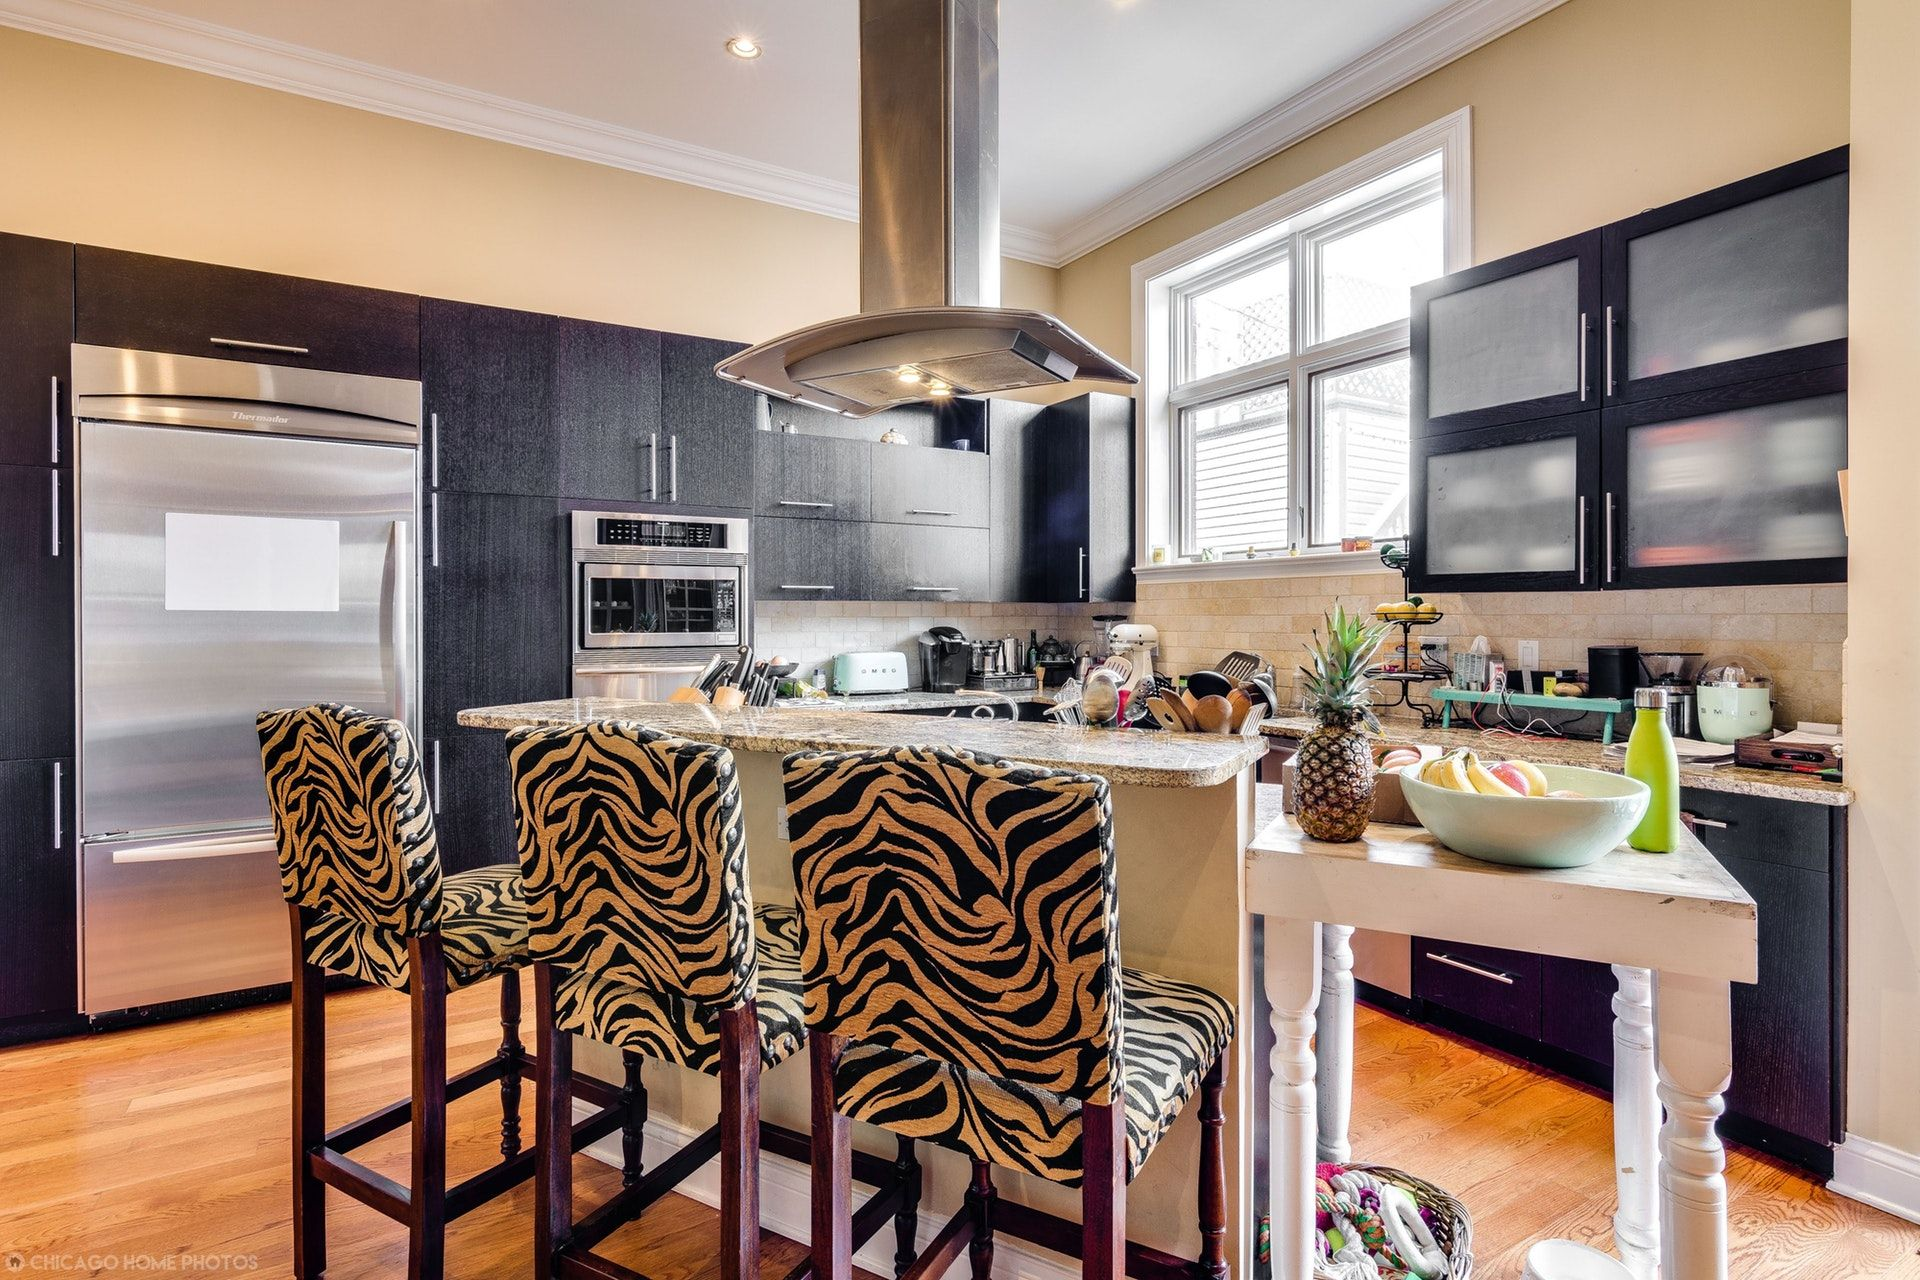 Modern Kitchen With Black Cabinets Frosted Glass Cabinets Stainless Steel Appliances Semi Custom Kitchen Cabinets Recessed Lighting Modern Kitchen Cabinets